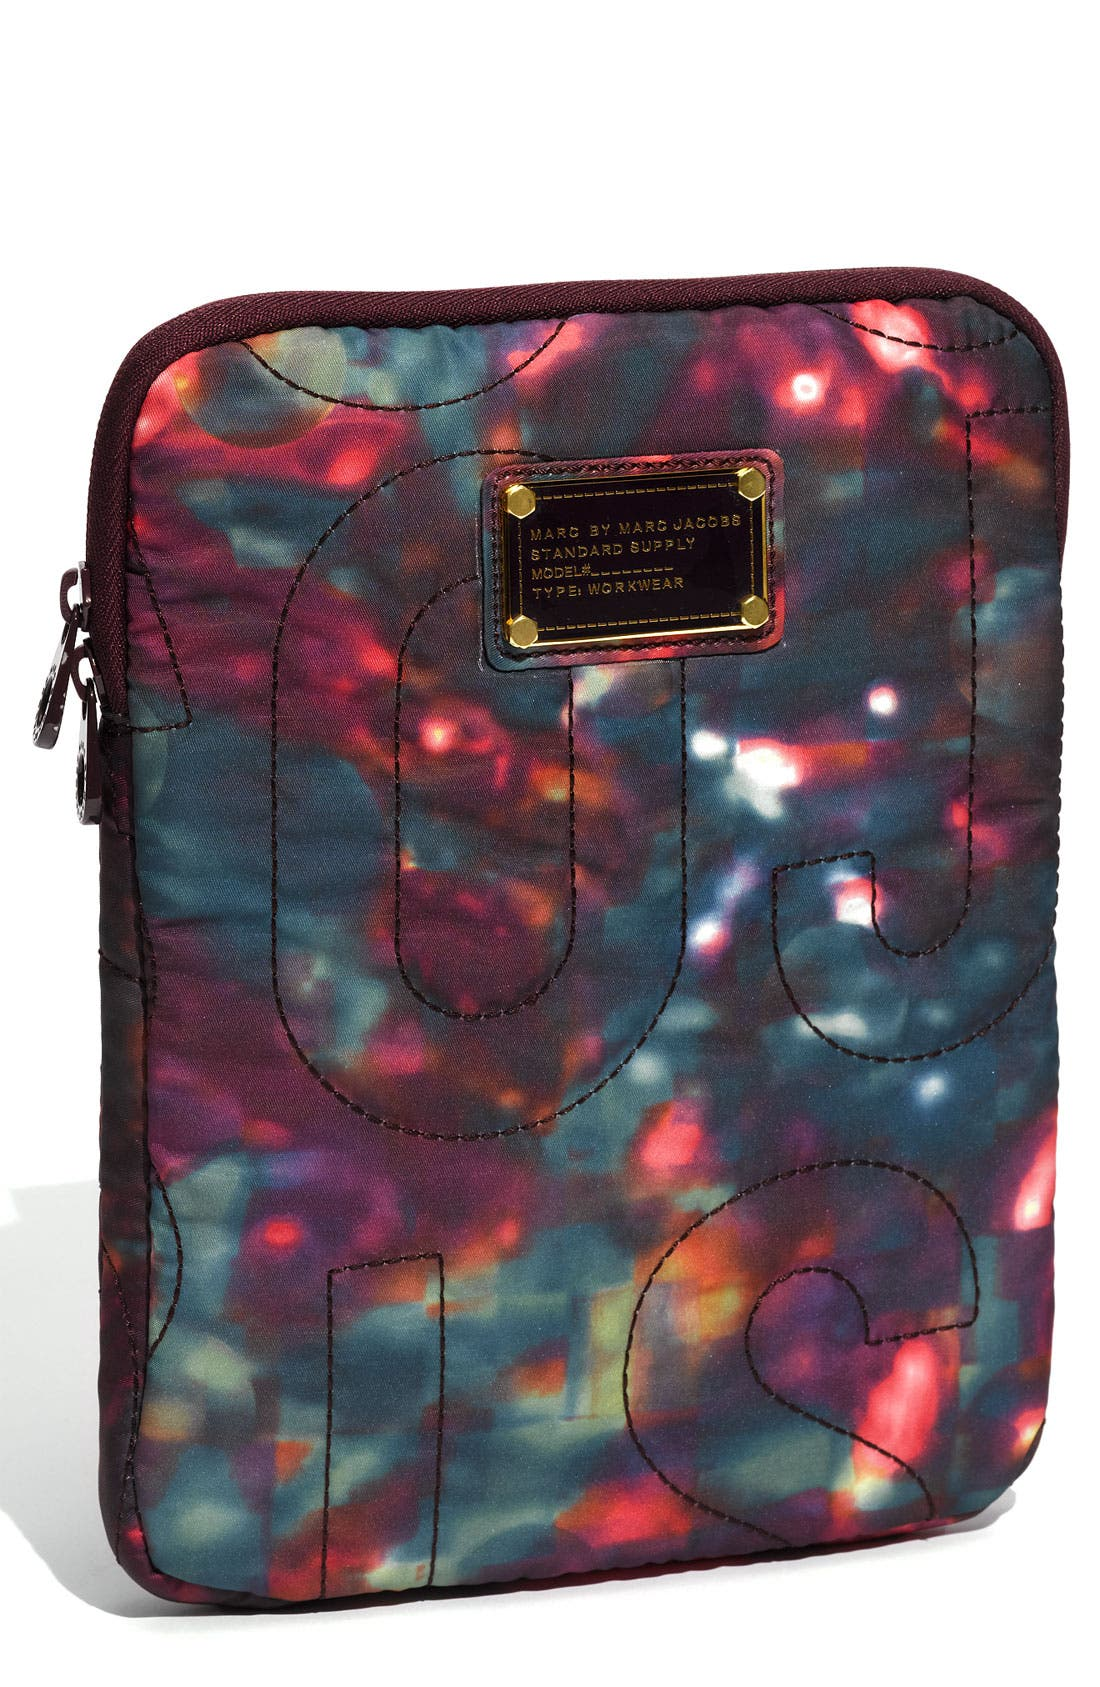 Alternate Image 1 Selected - MARC BY MARC JACOBS 'Pretty Nylon' iPad Case